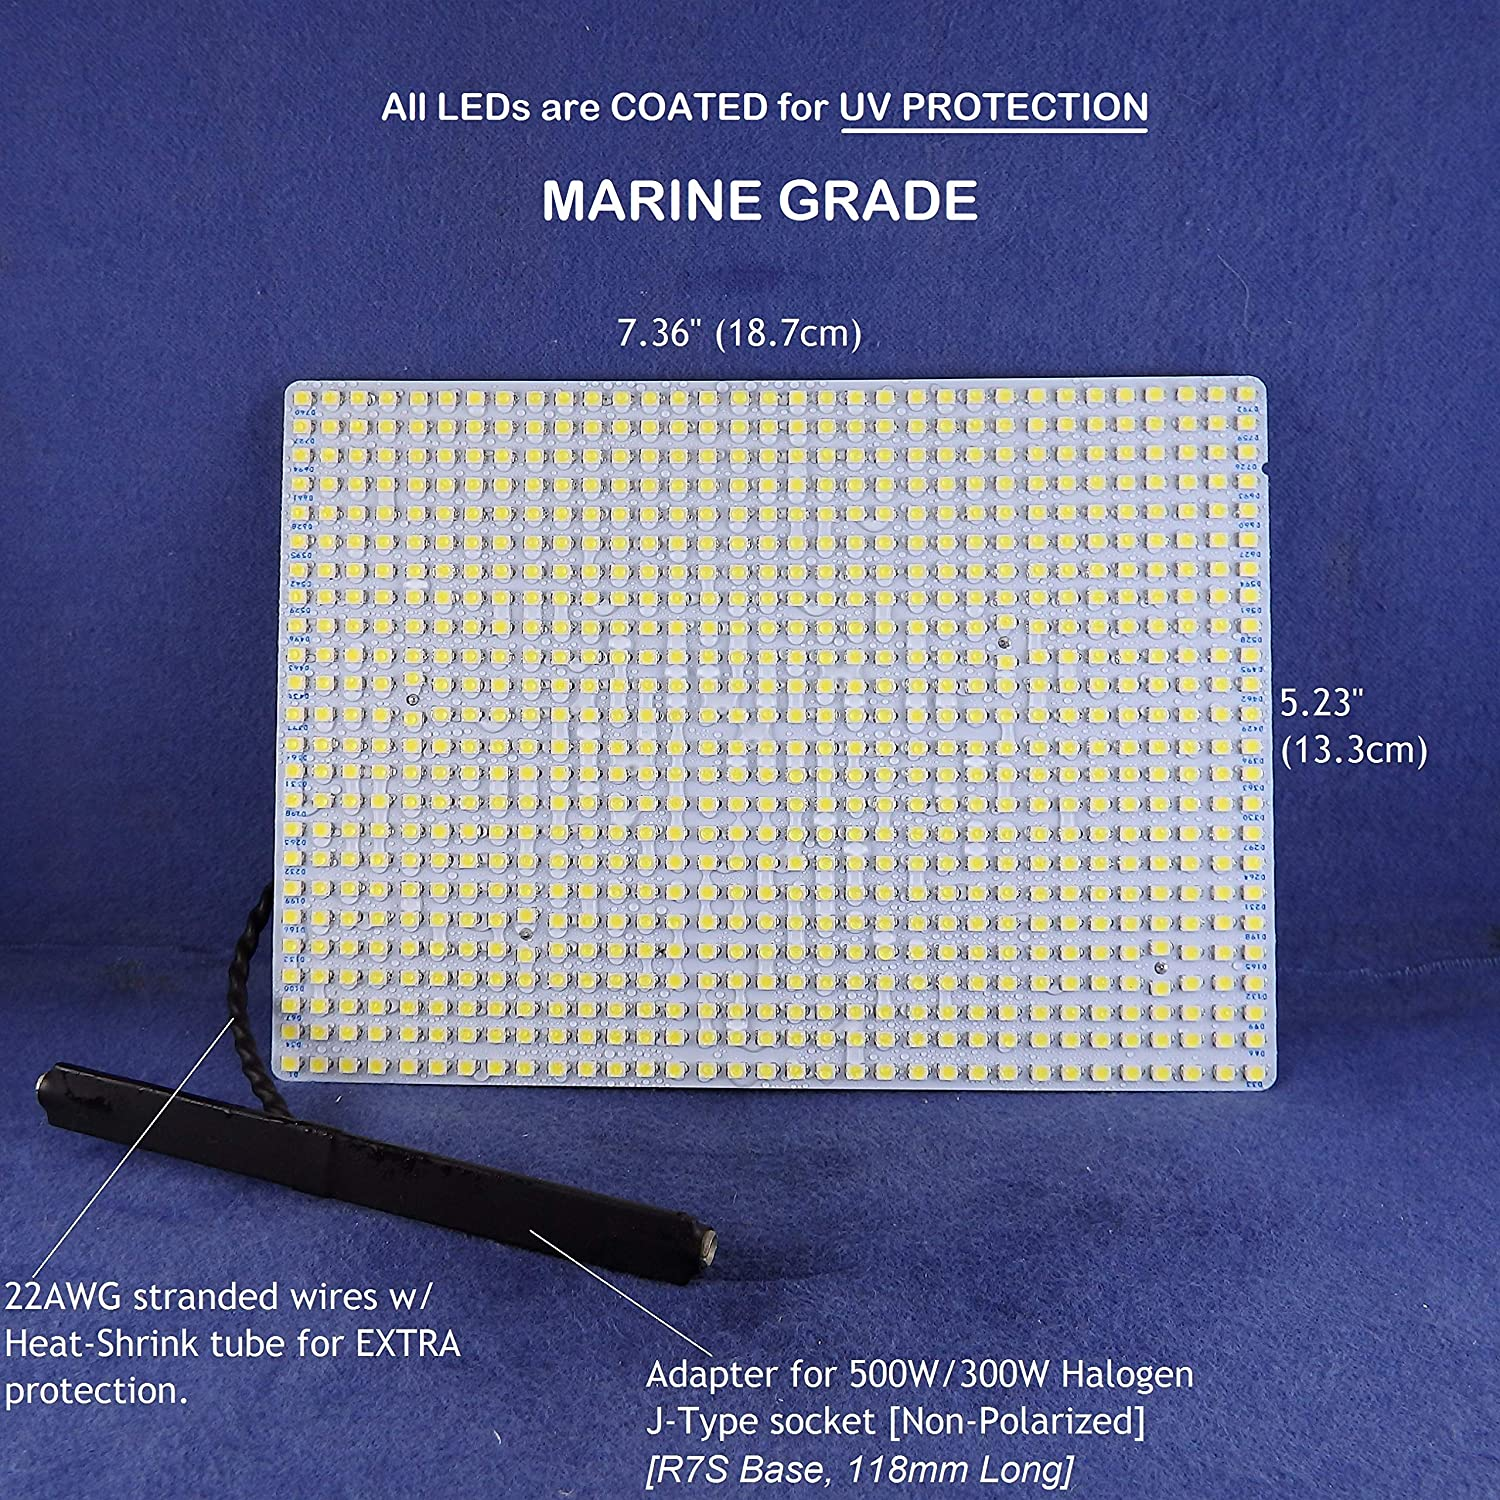 Water Resistant Led Panel For Flood Light Fixtures 120vac 7000lumens 33watts Marine Grade Soft White 3000k Amazon Com